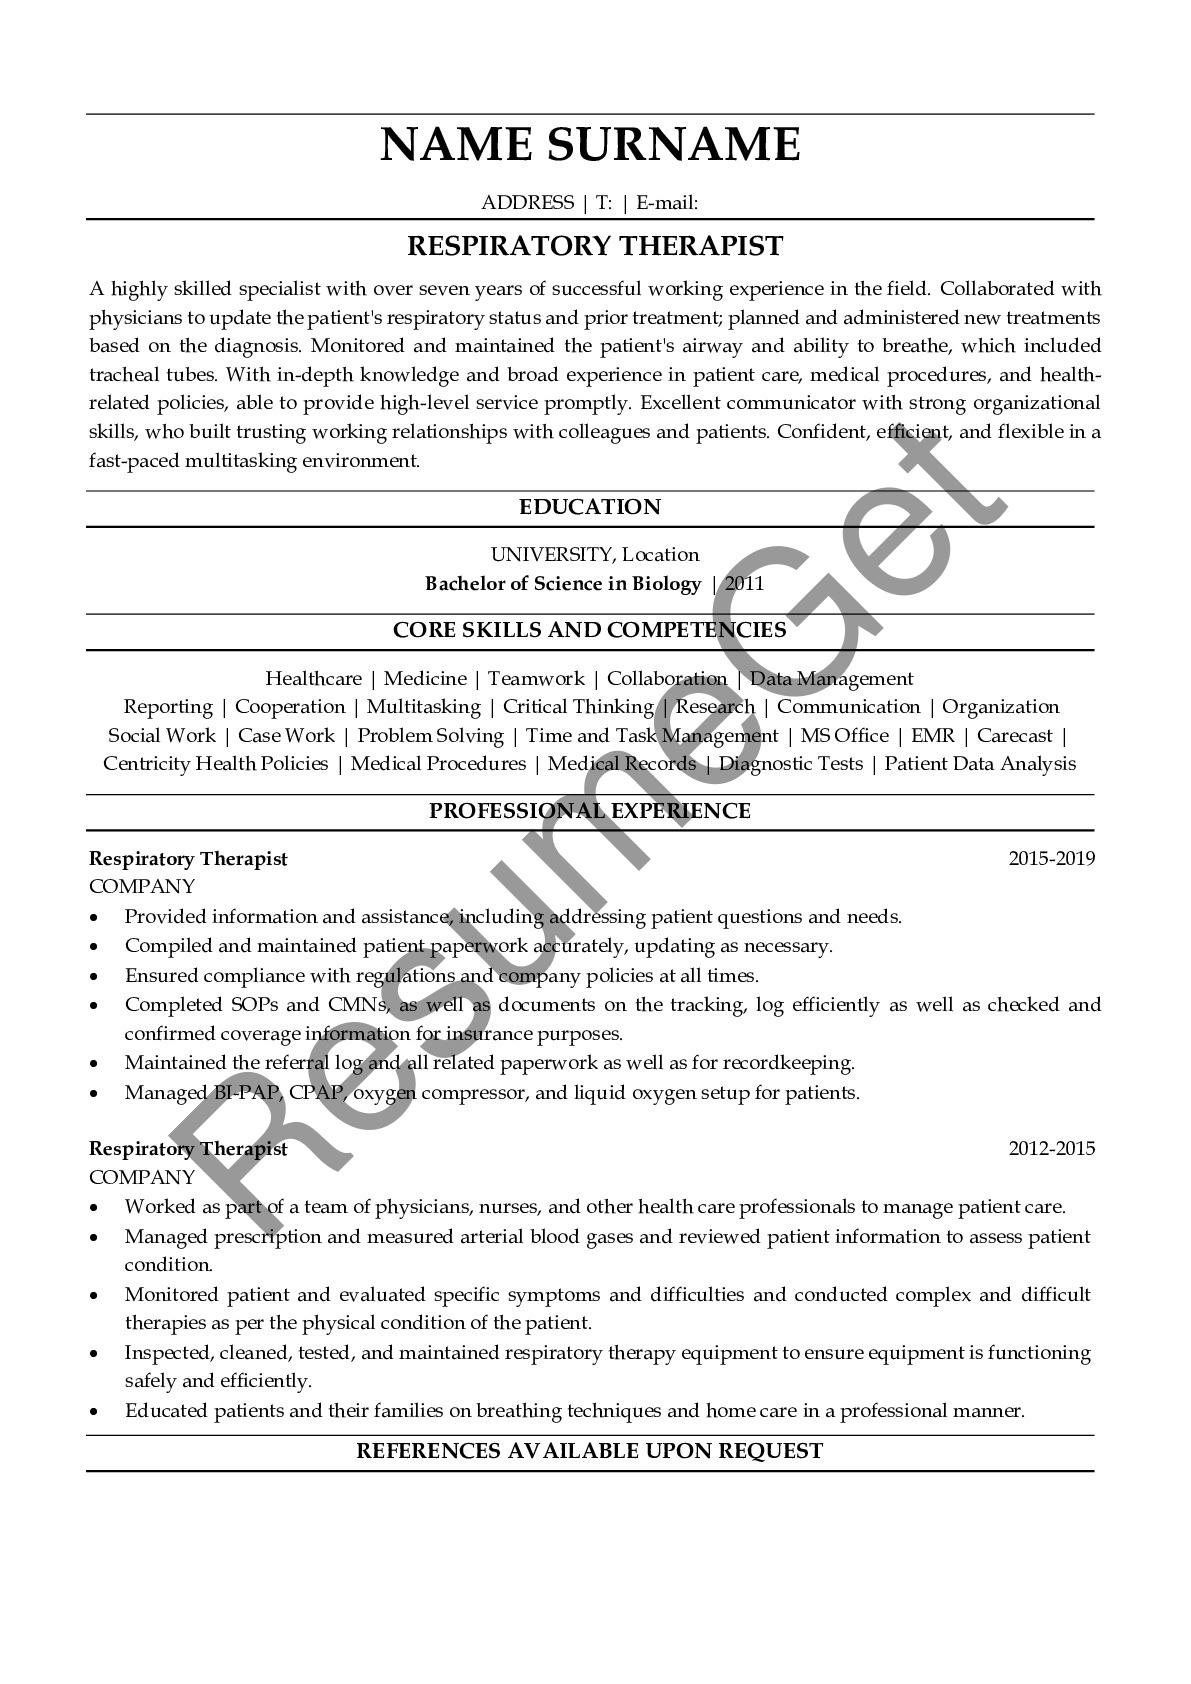 legal resume writing service best services respiratory therapist free paralegal templates Resume Legal Resume Writing Services